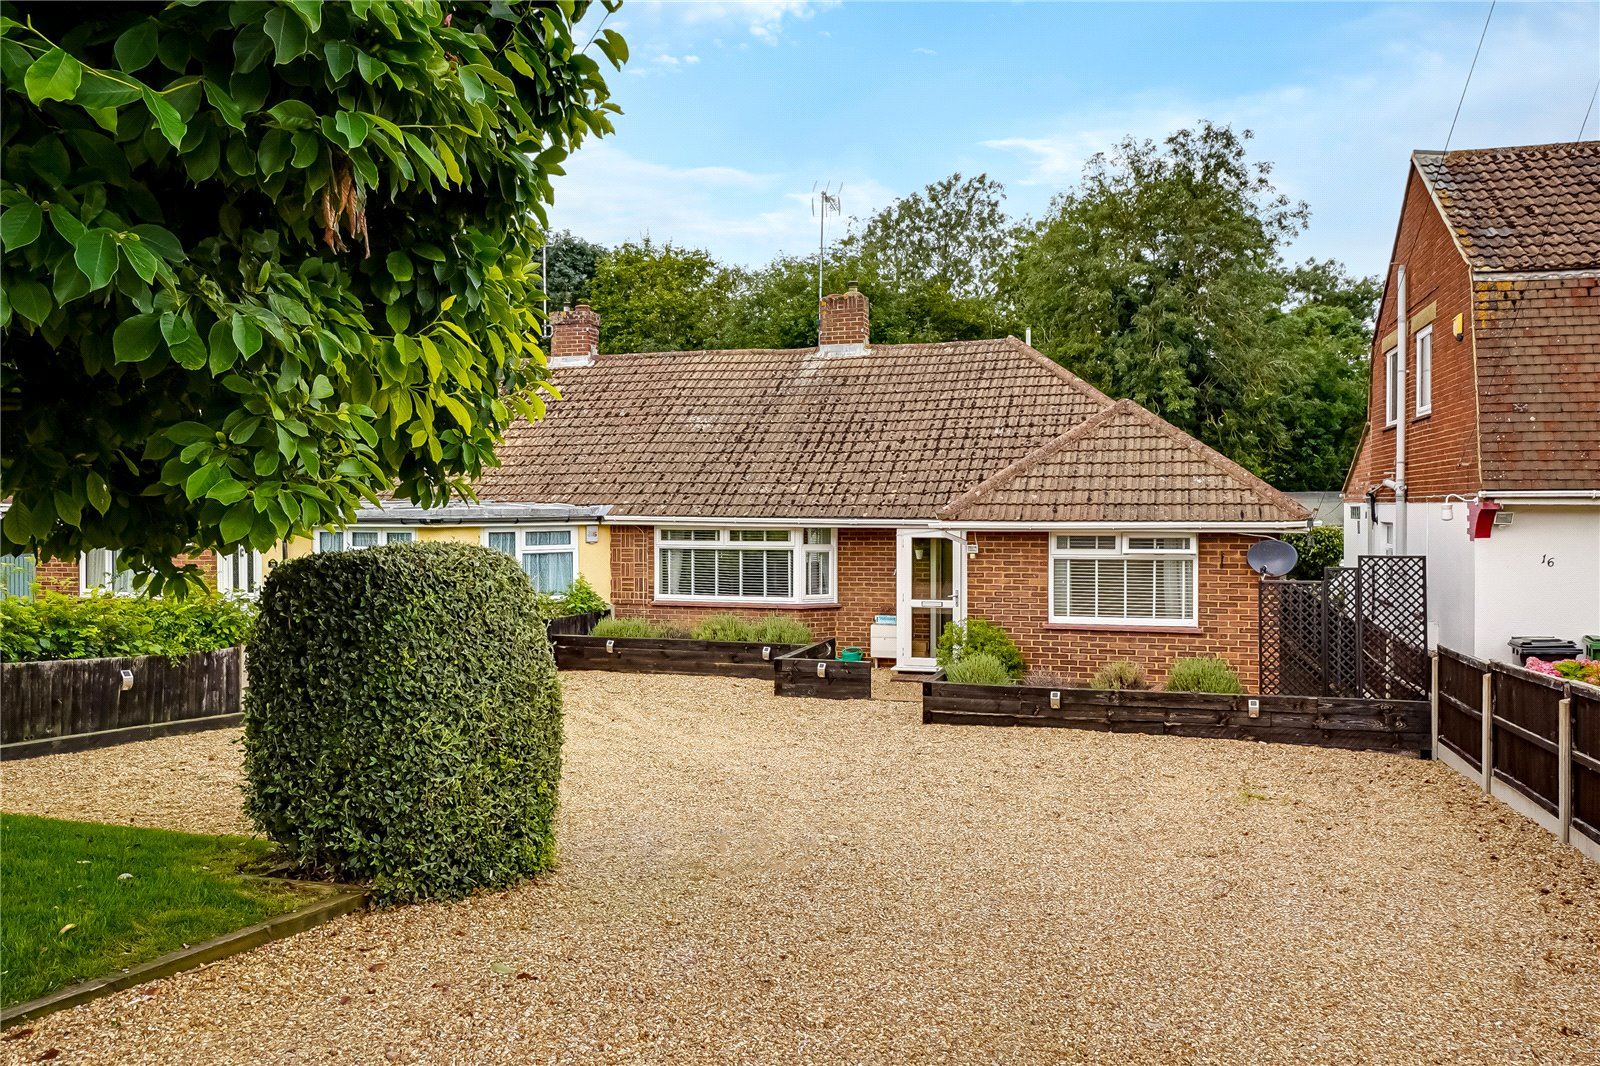 3 bed bungalow for sale in Bannister Road, Penenden Heath, ME14